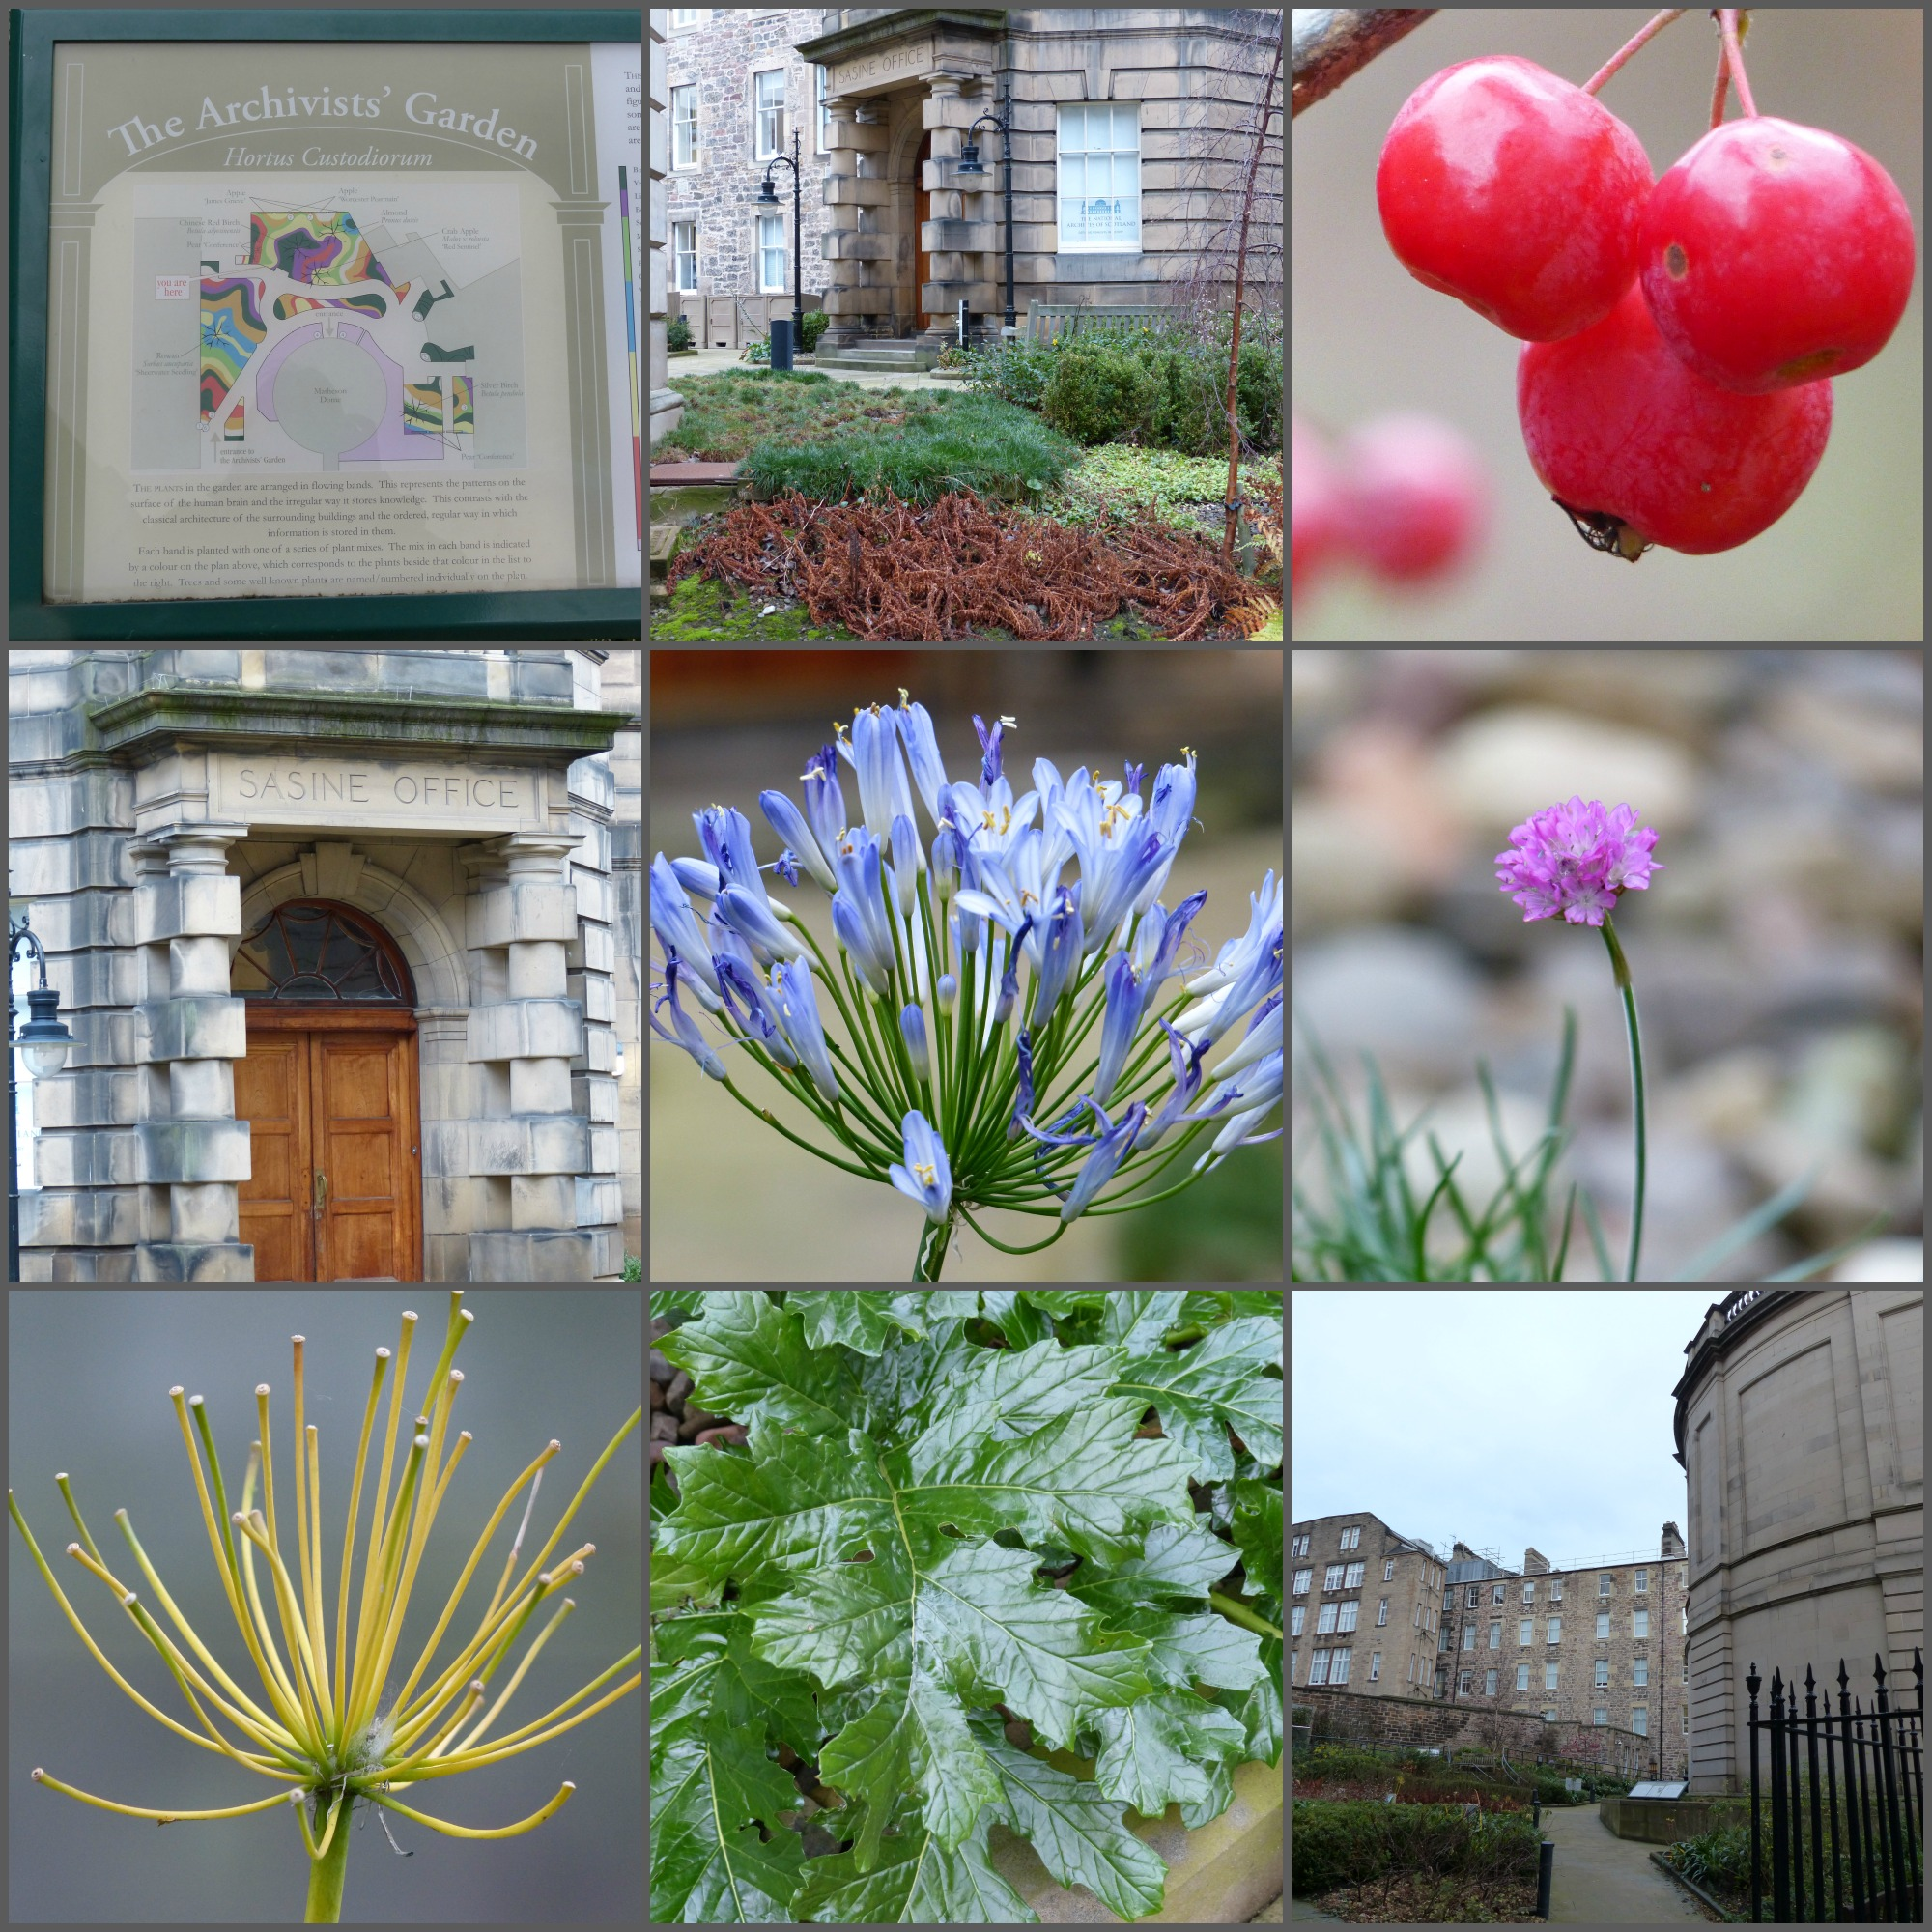 Ancestral Research and the Archivist's Garden, Edinburgh